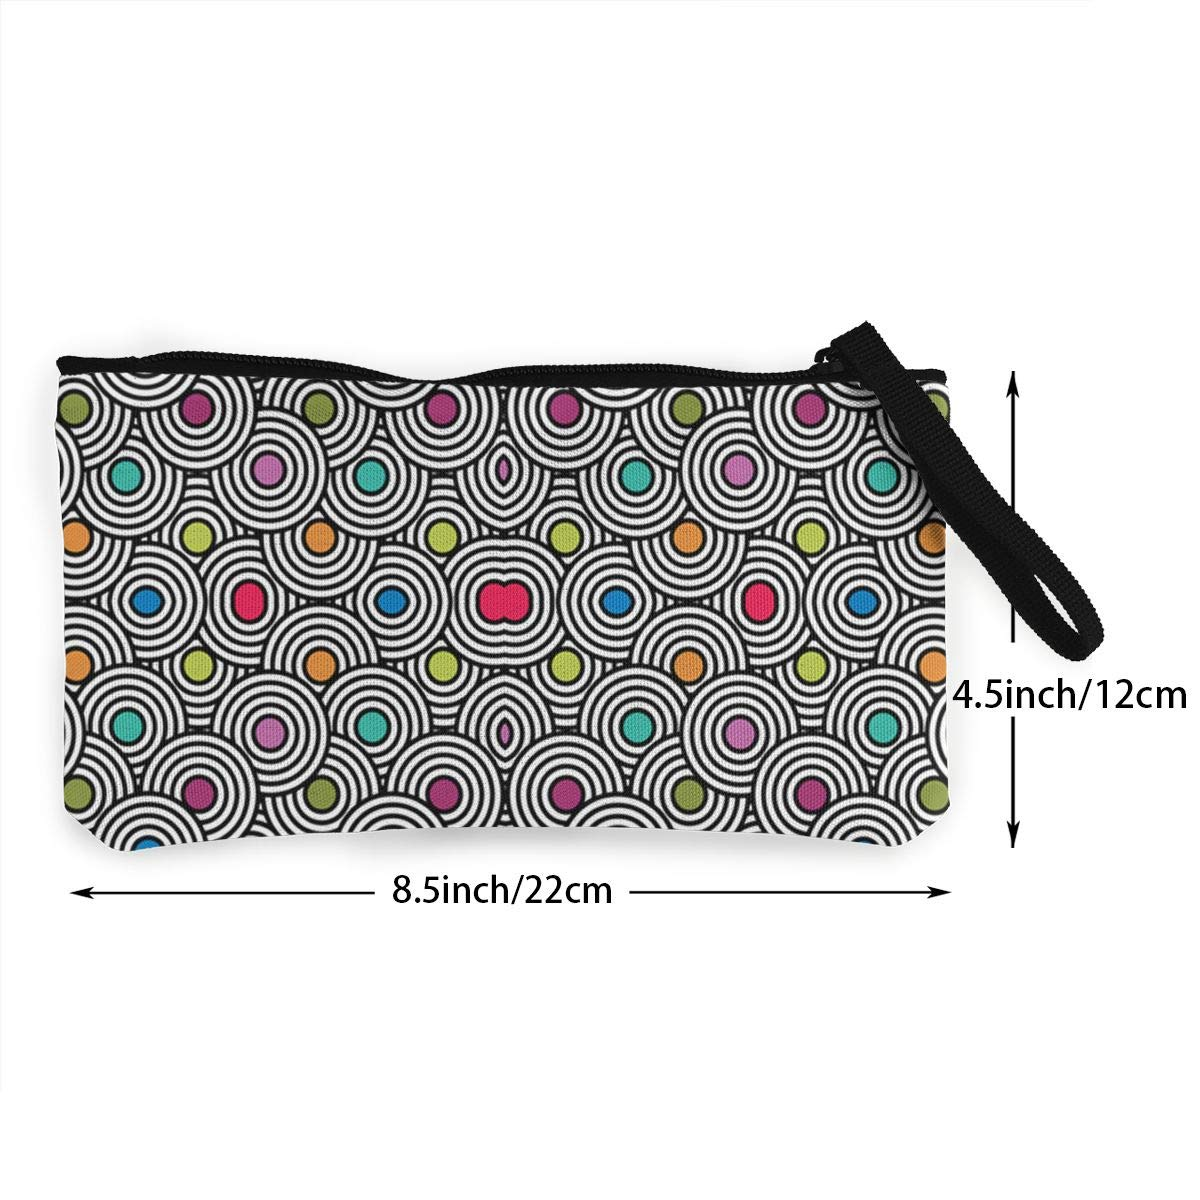 Cellphone Bag With Handle Make Up Bag DH14hjsdDEE Colorful Center Dots zipper canvas coin purse wallet